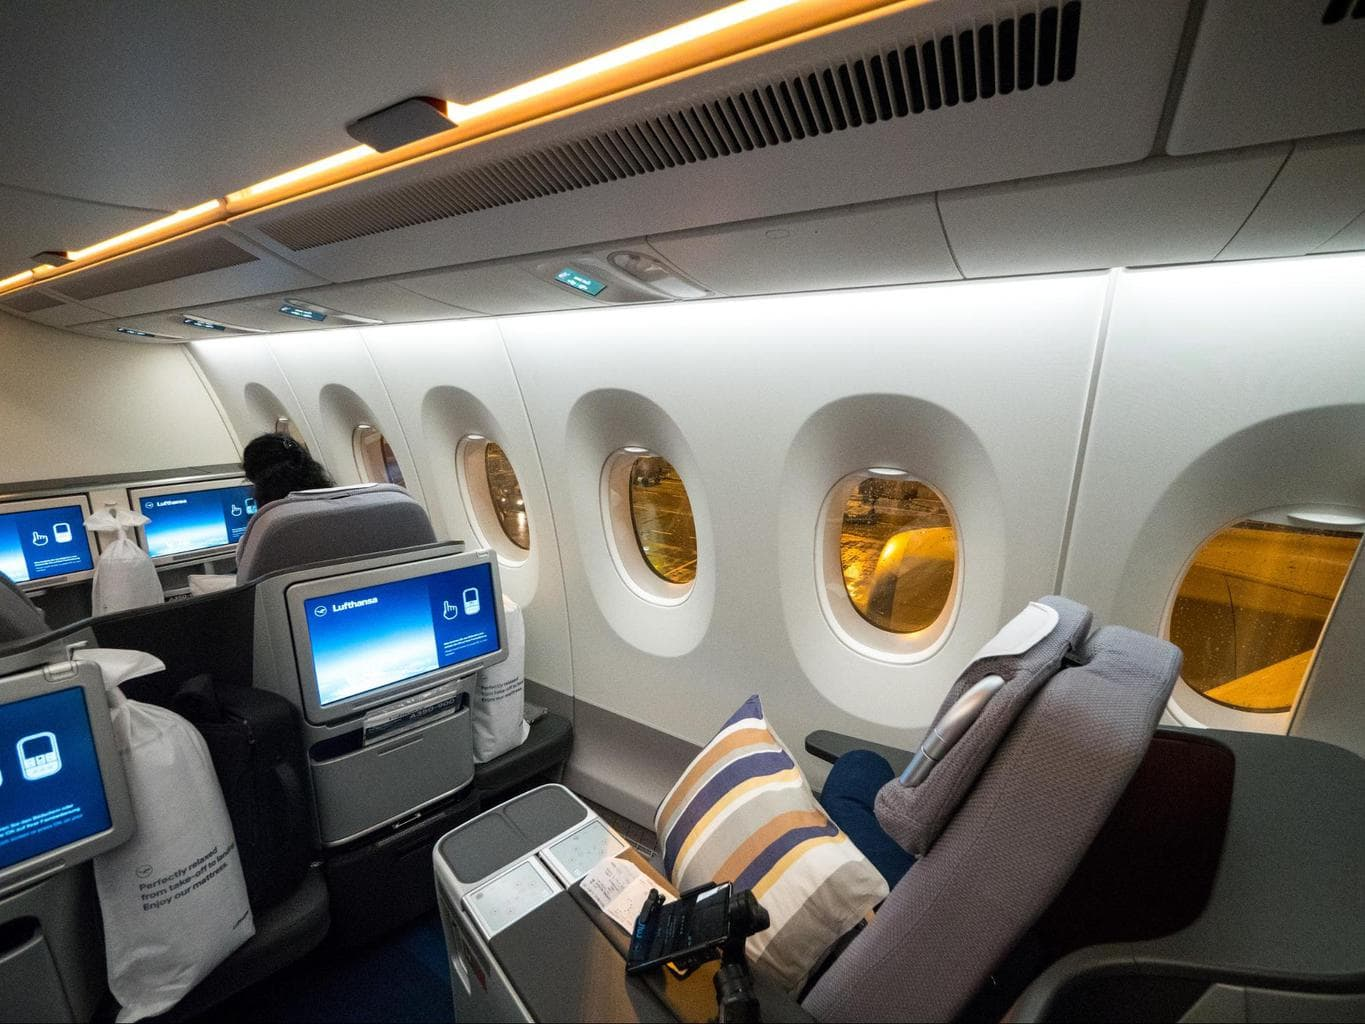 review of new lufthansa business class airbus a350 once in a